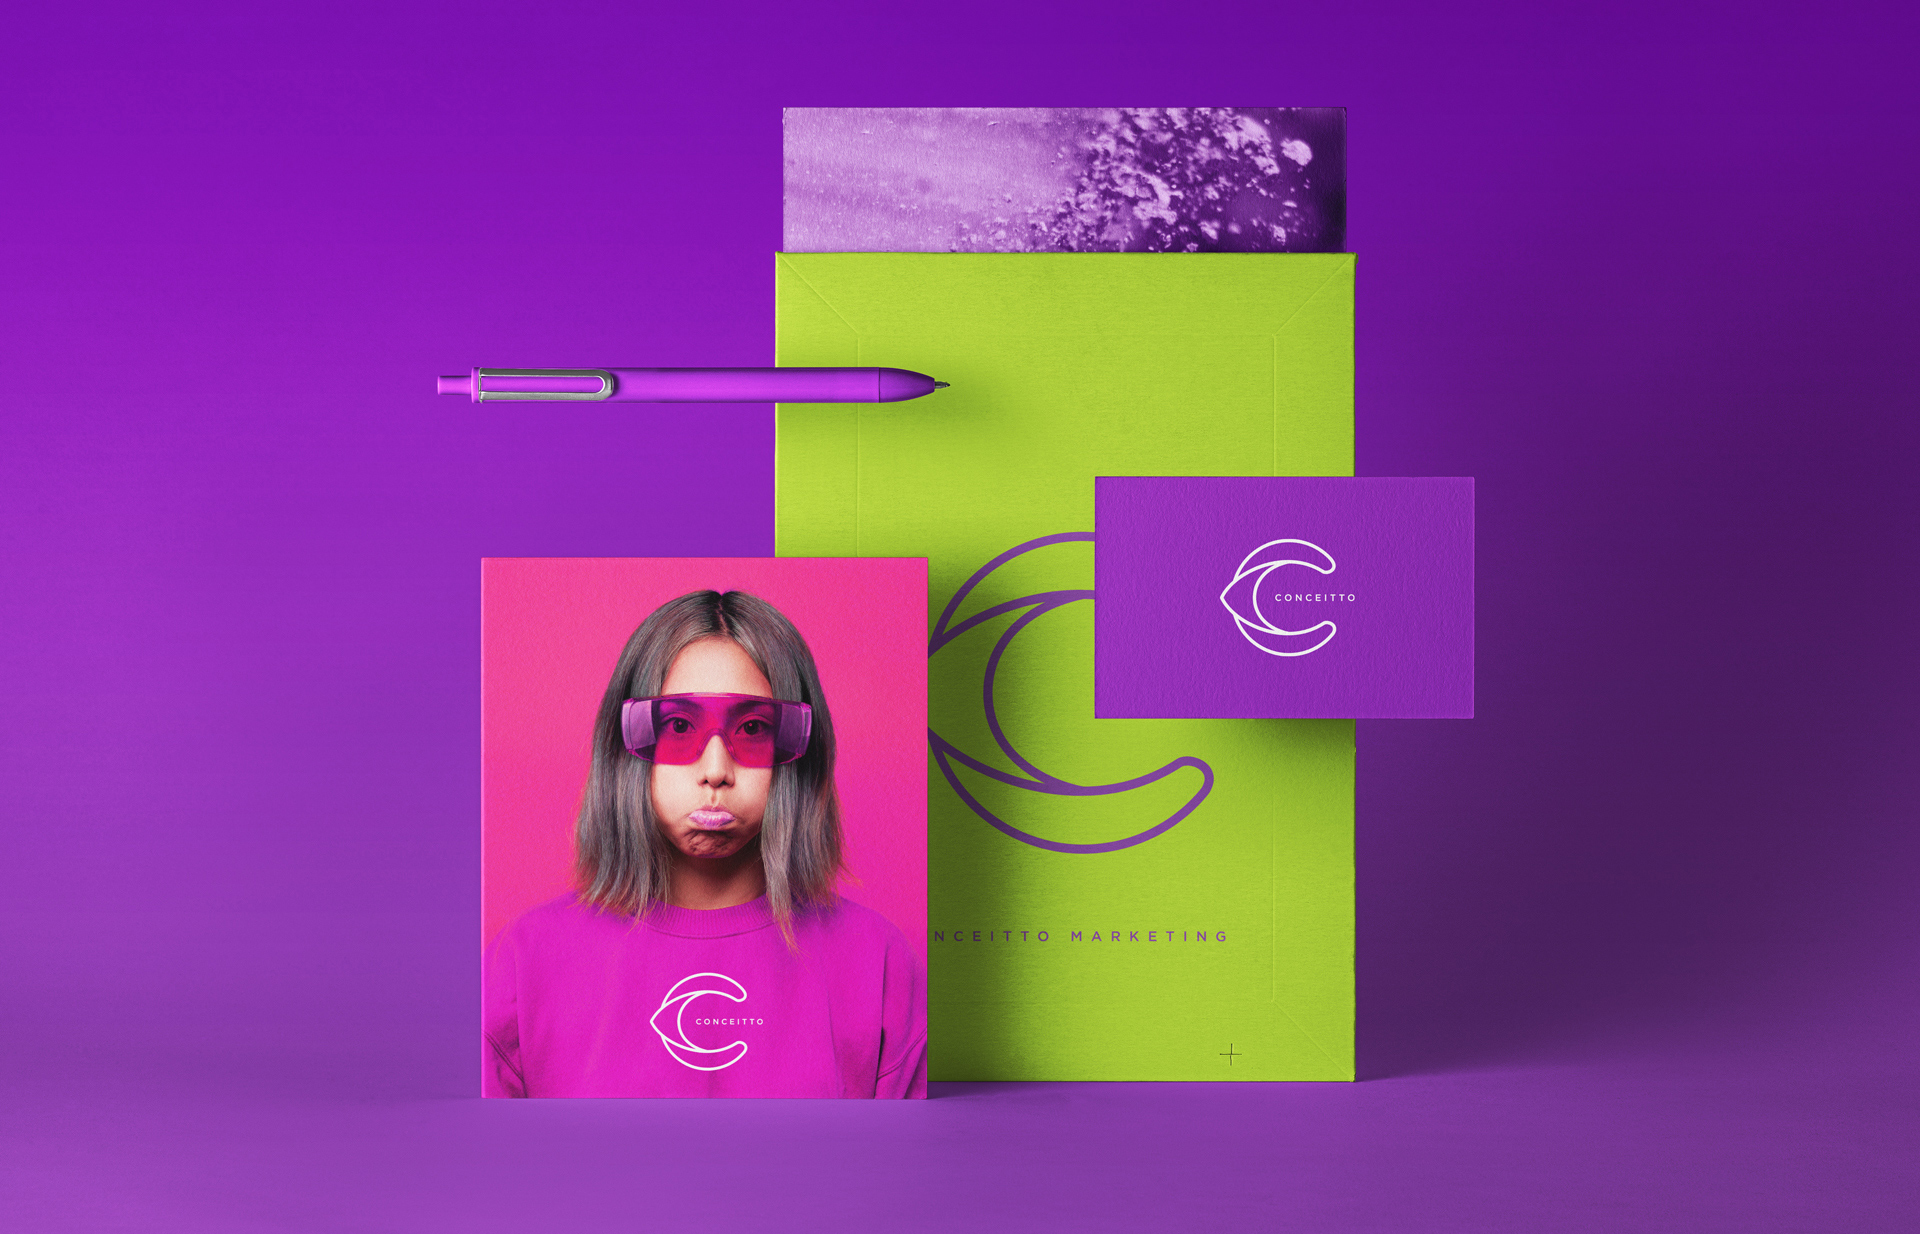 Conceitto Branding by INDUSTRIA